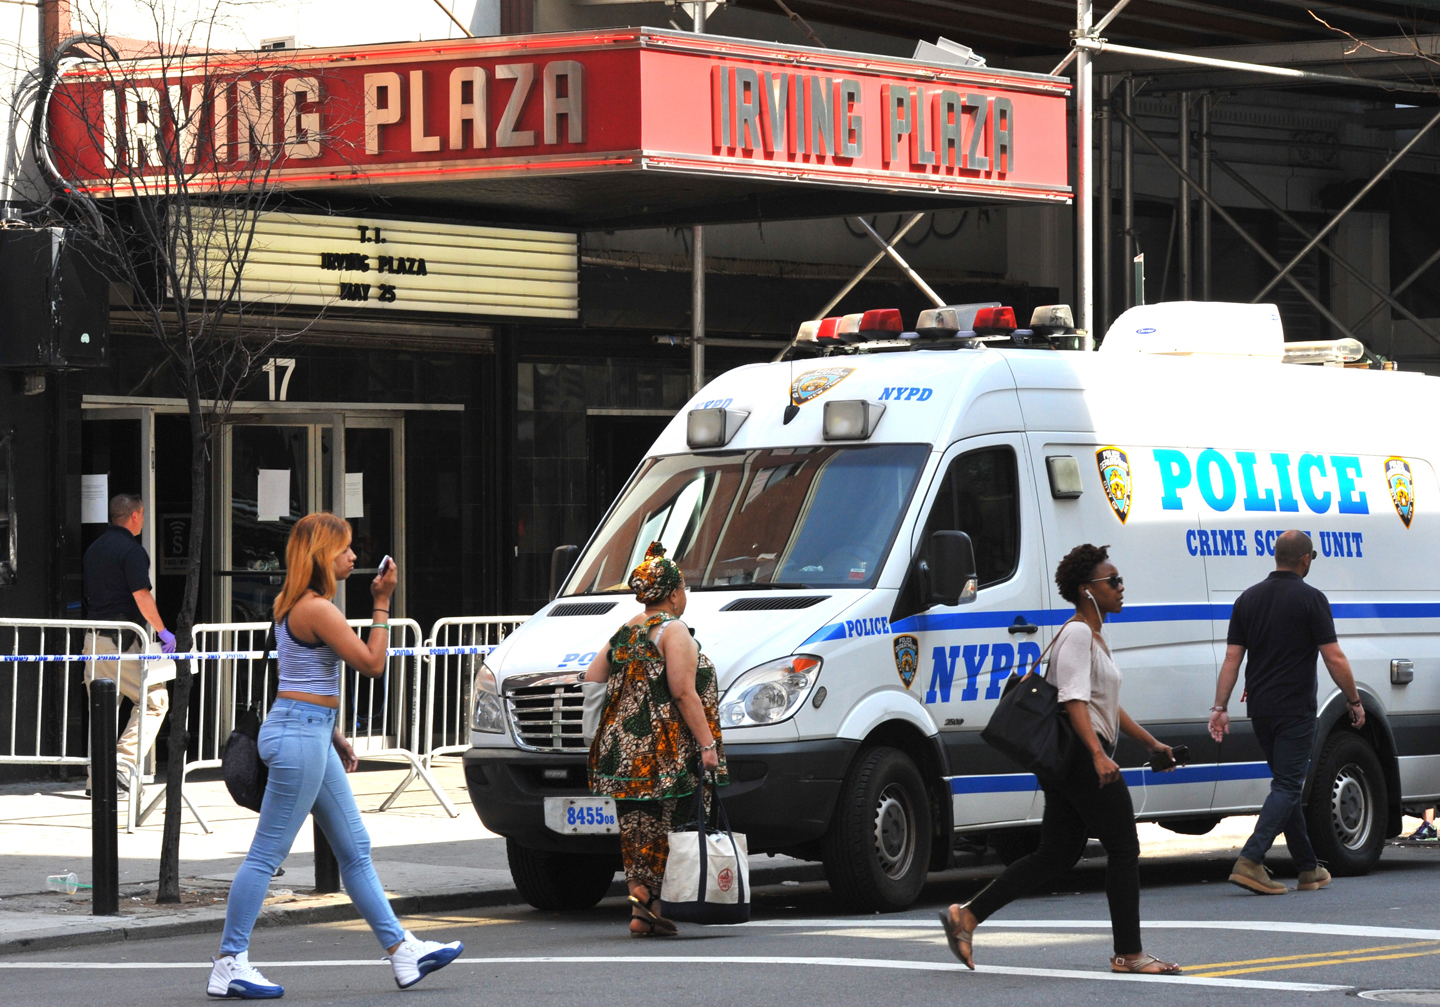 A New York Police Department Crime Scene Unit is seen outside Irving Plaza on May 26, 2016 in New York. One person was killed and three others injured at a prominent New York music venue late May 25, 2016 during a show to be headlined by rapper T.I., police said. Concert-goers at Irving Plaza raced out in panic as shots rang out at 10:15 pm (0200 GMT Thursday) during the opening act before T.I., an Atlanta rapper with a history of legal run-ins.Police said a 33-year-old man was shot in the stomach and pronounced dead at a hospital near Irving Plaza, which is near Manhattan's bustling Union Square and the upscale Gramercy Park district. / AFP / TIMOTHY A. CLARY (Photo credit should read )